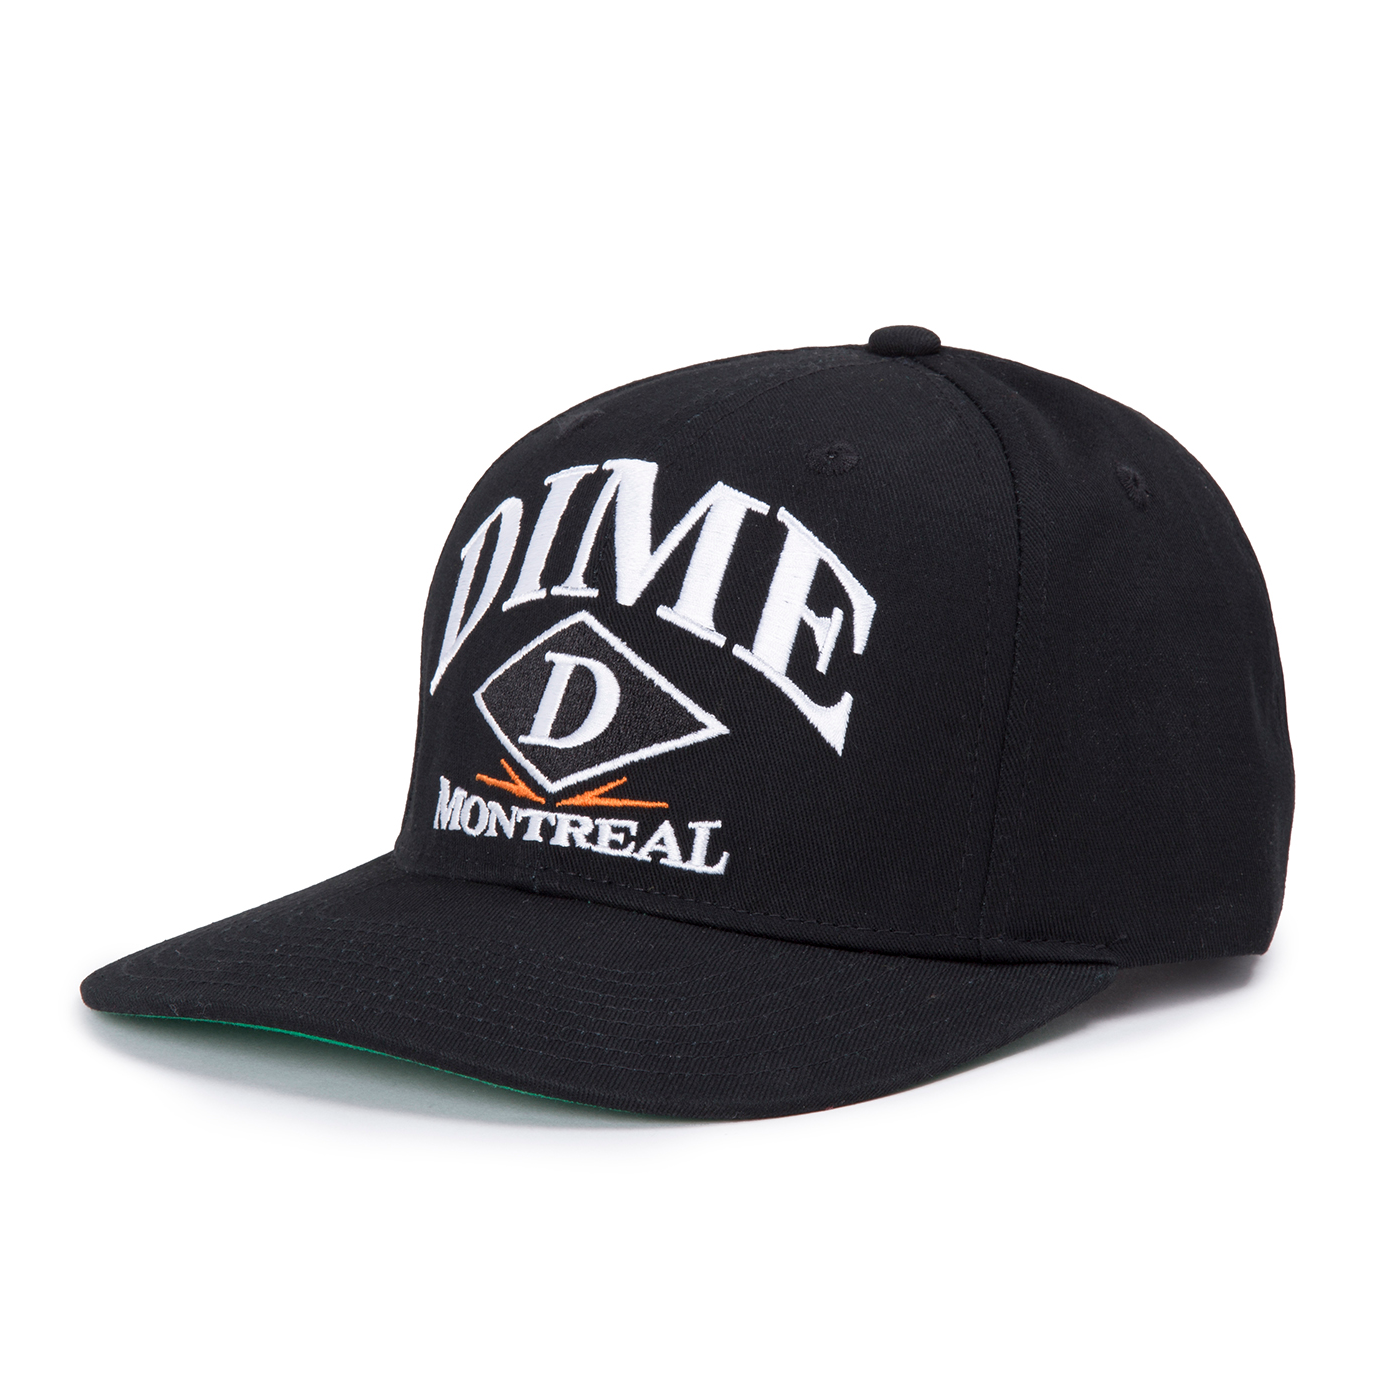 Dime Montreal Cap Product Photo #1